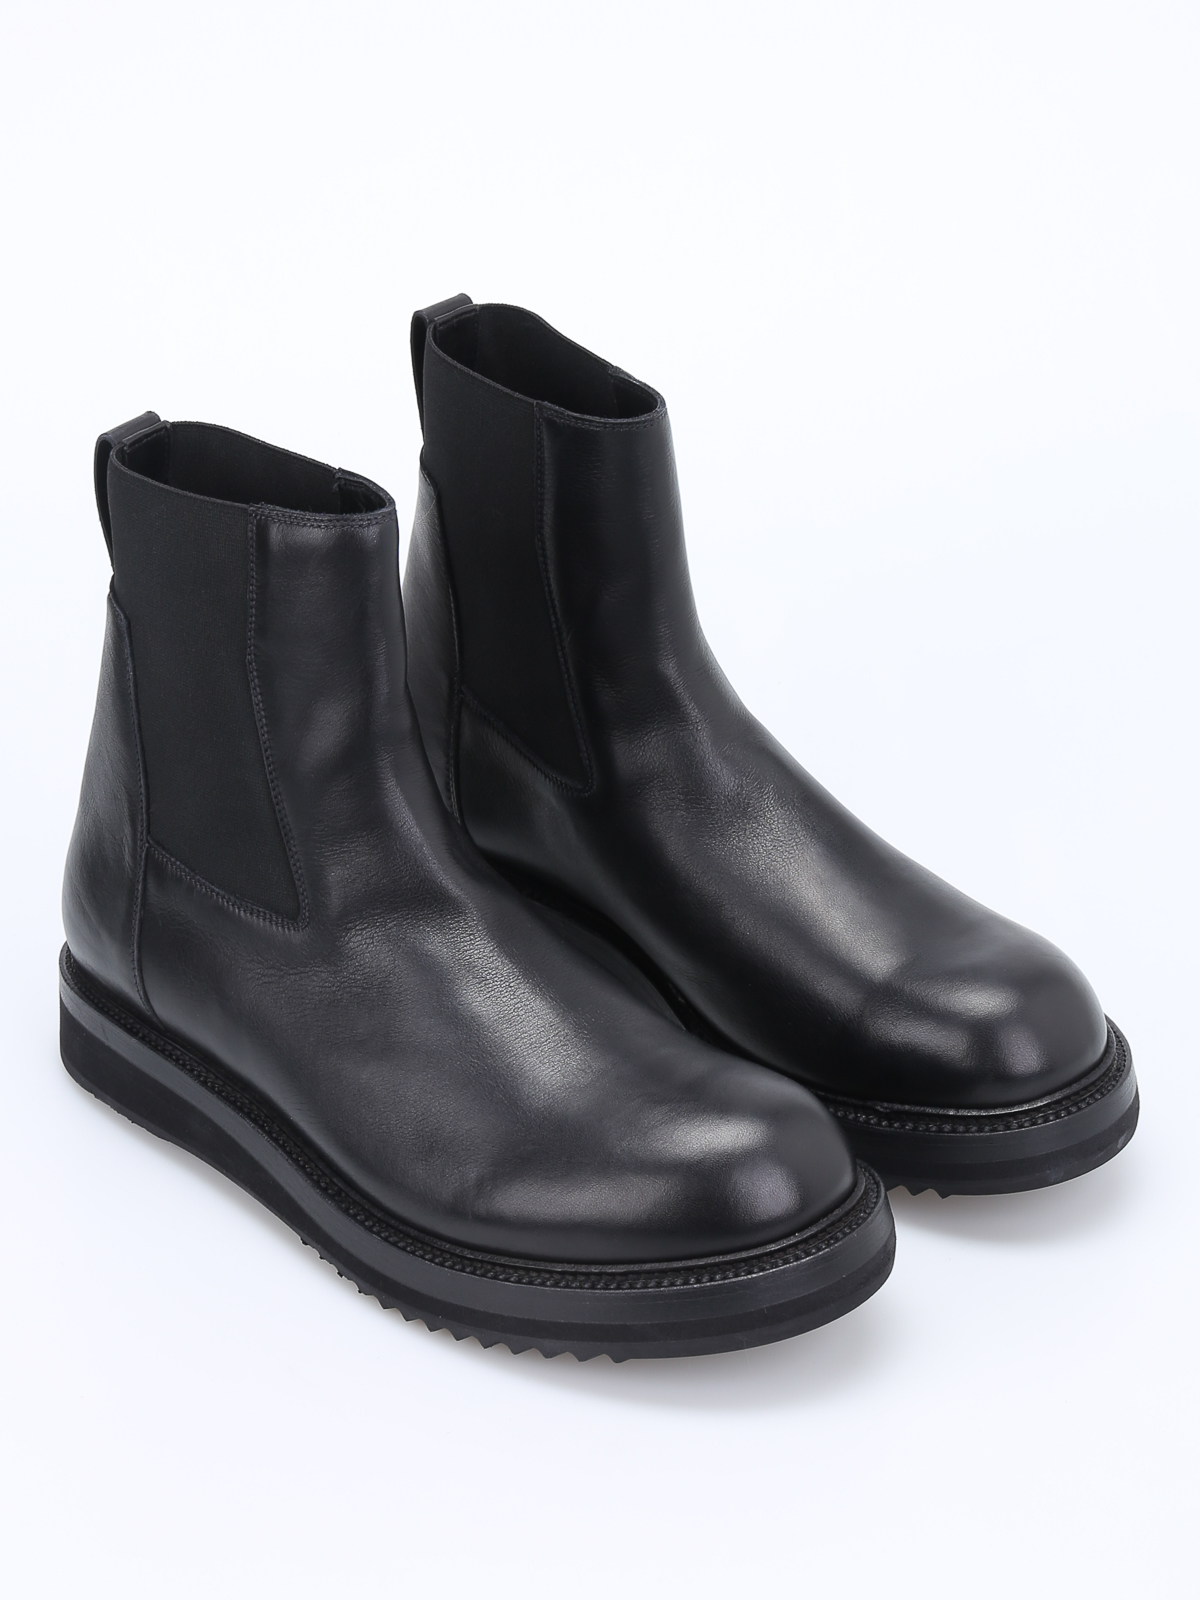 Rick OwensLeather Ankle Boots RbUgoFe5